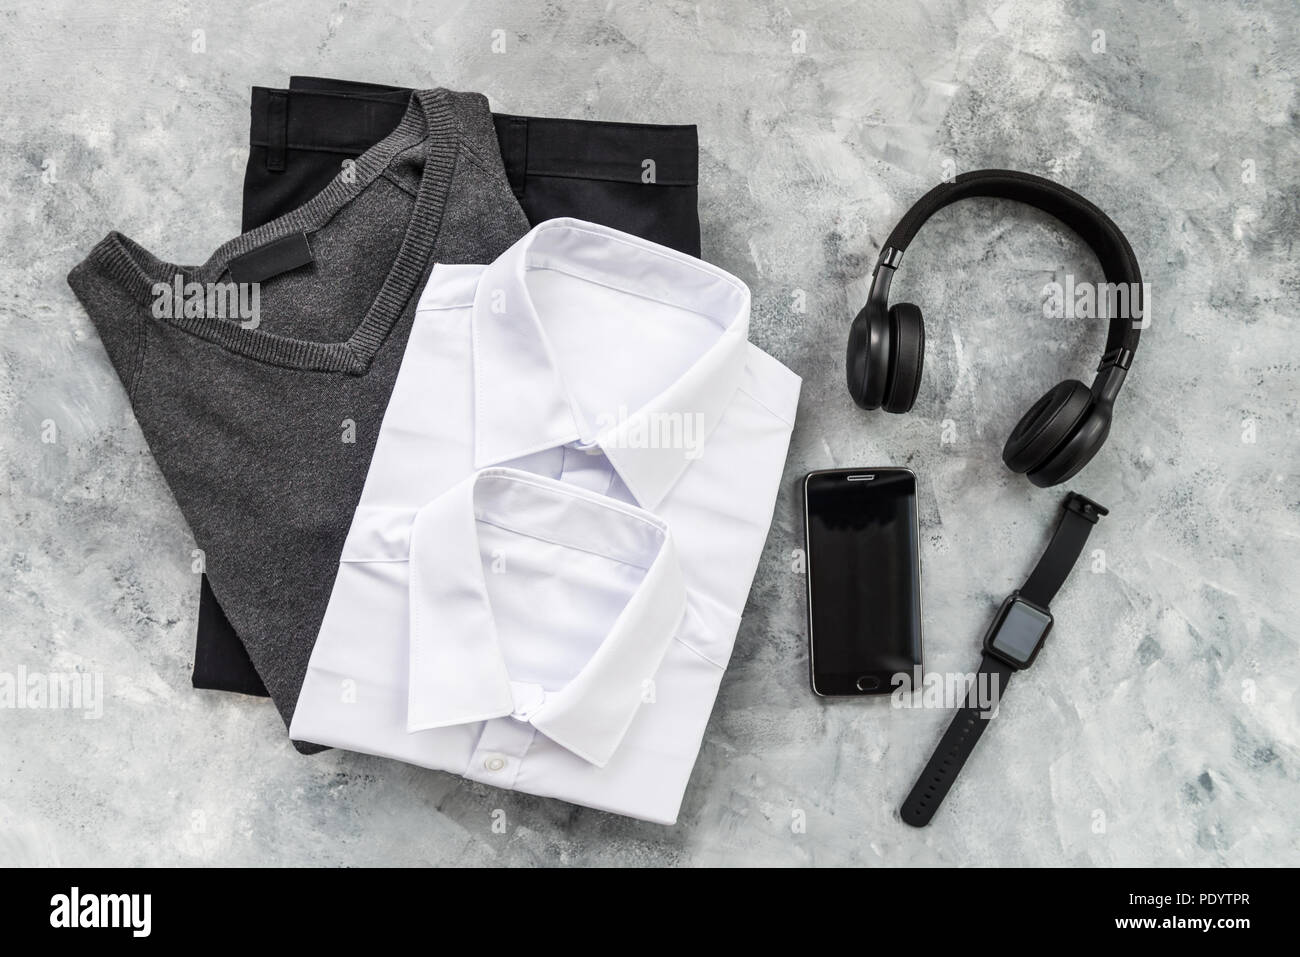 Back to school concept, school uniform such as white shirts and trousers, as well as electronic devices such as smart watch, mobile and headphones on  - Stock Image